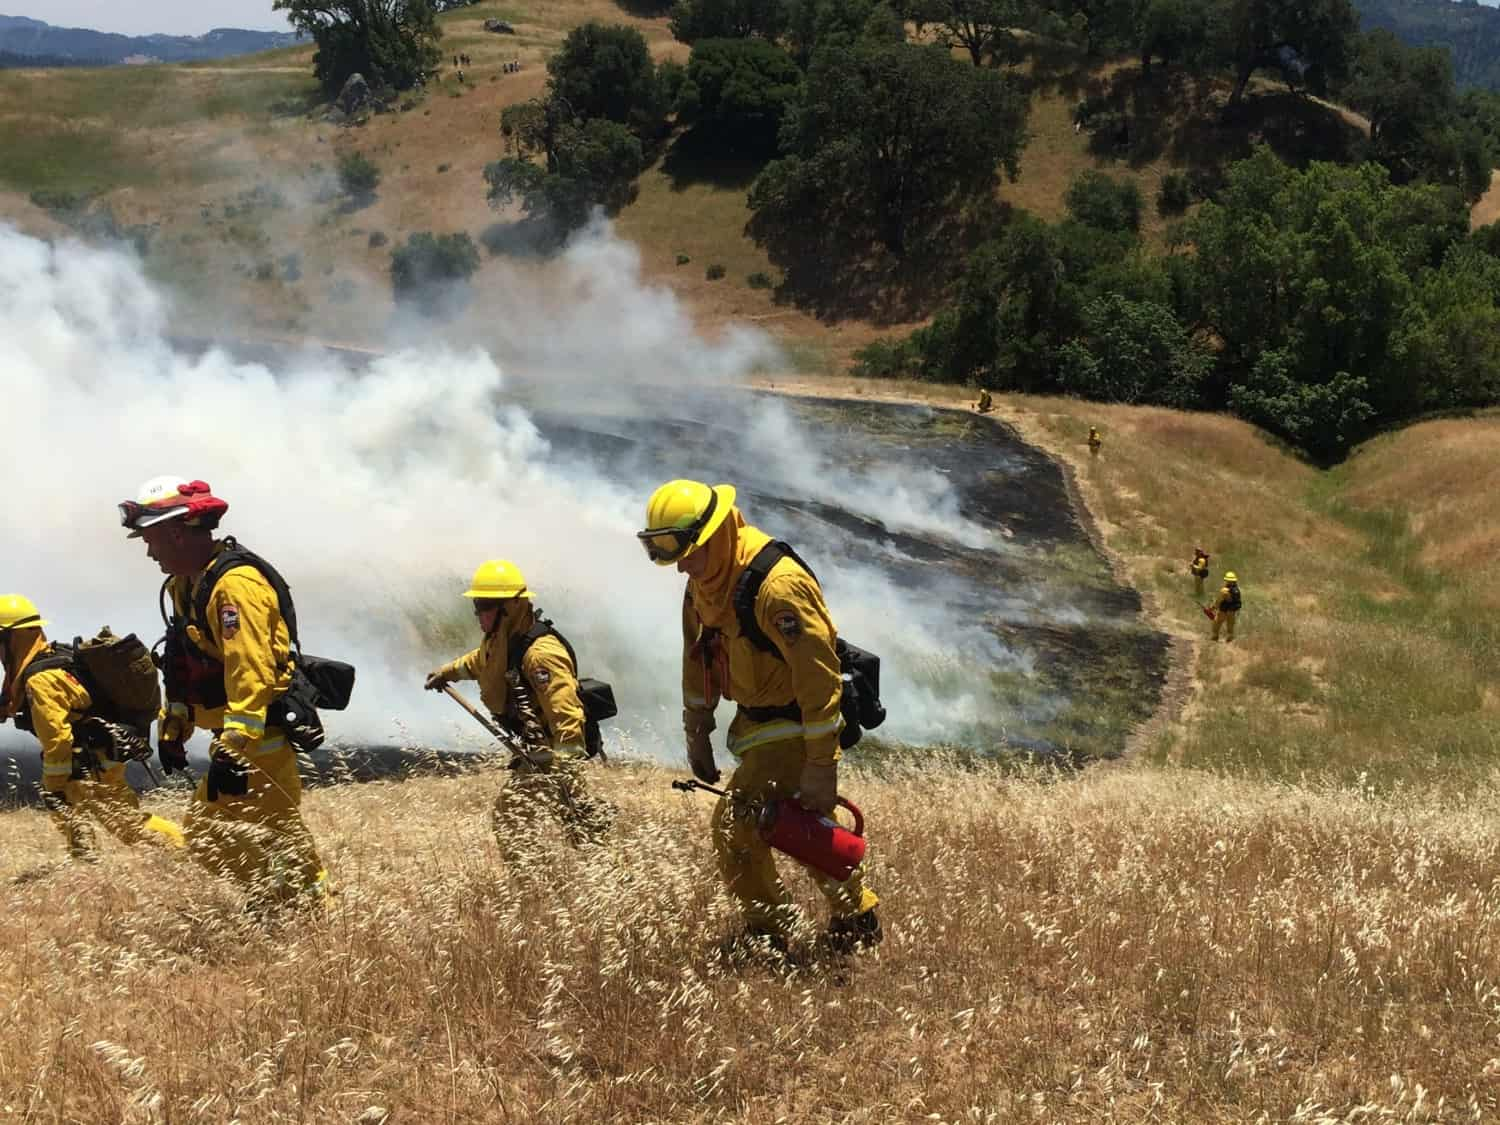 A prescribed fire in northern California on a steep hillside